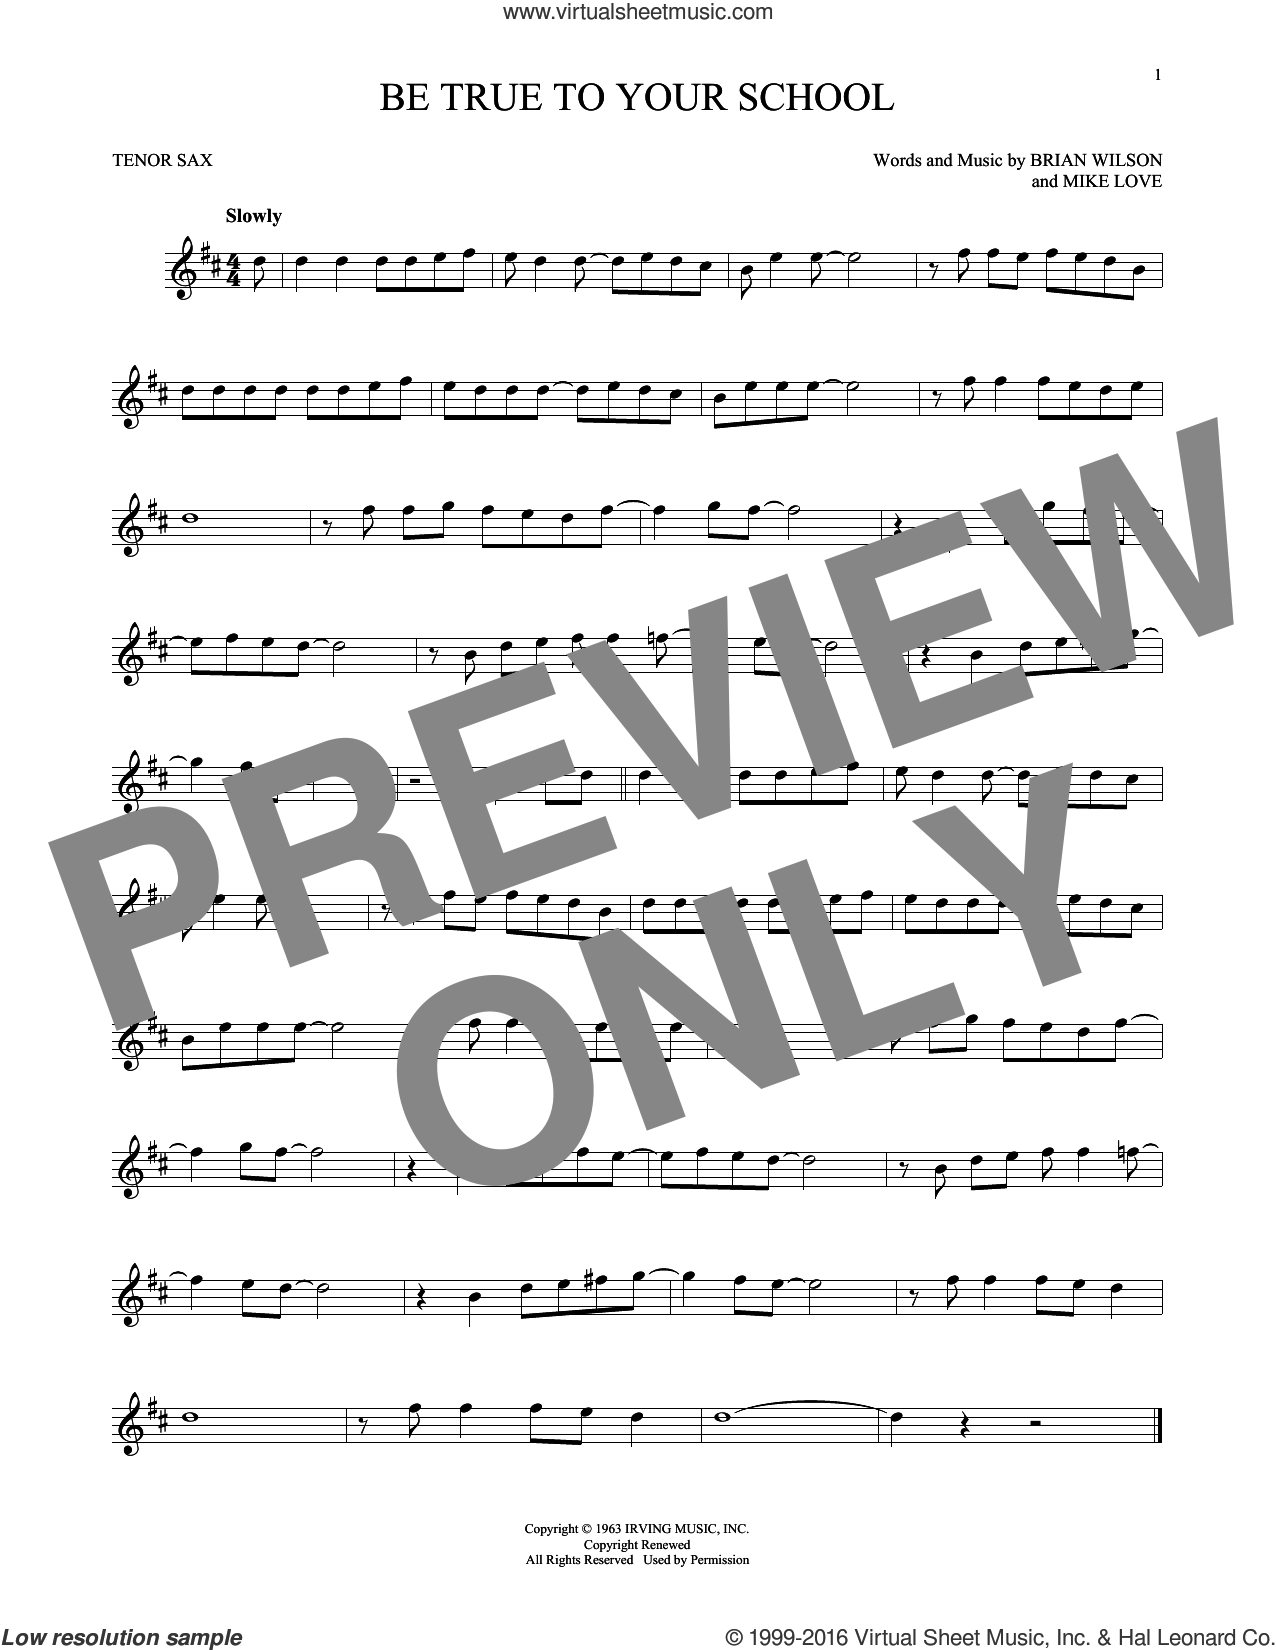 Be True To Your School sheet music for tenor saxophone solo by The Beach Boys, Brian Wilson and Mike Love, intermediate skill level